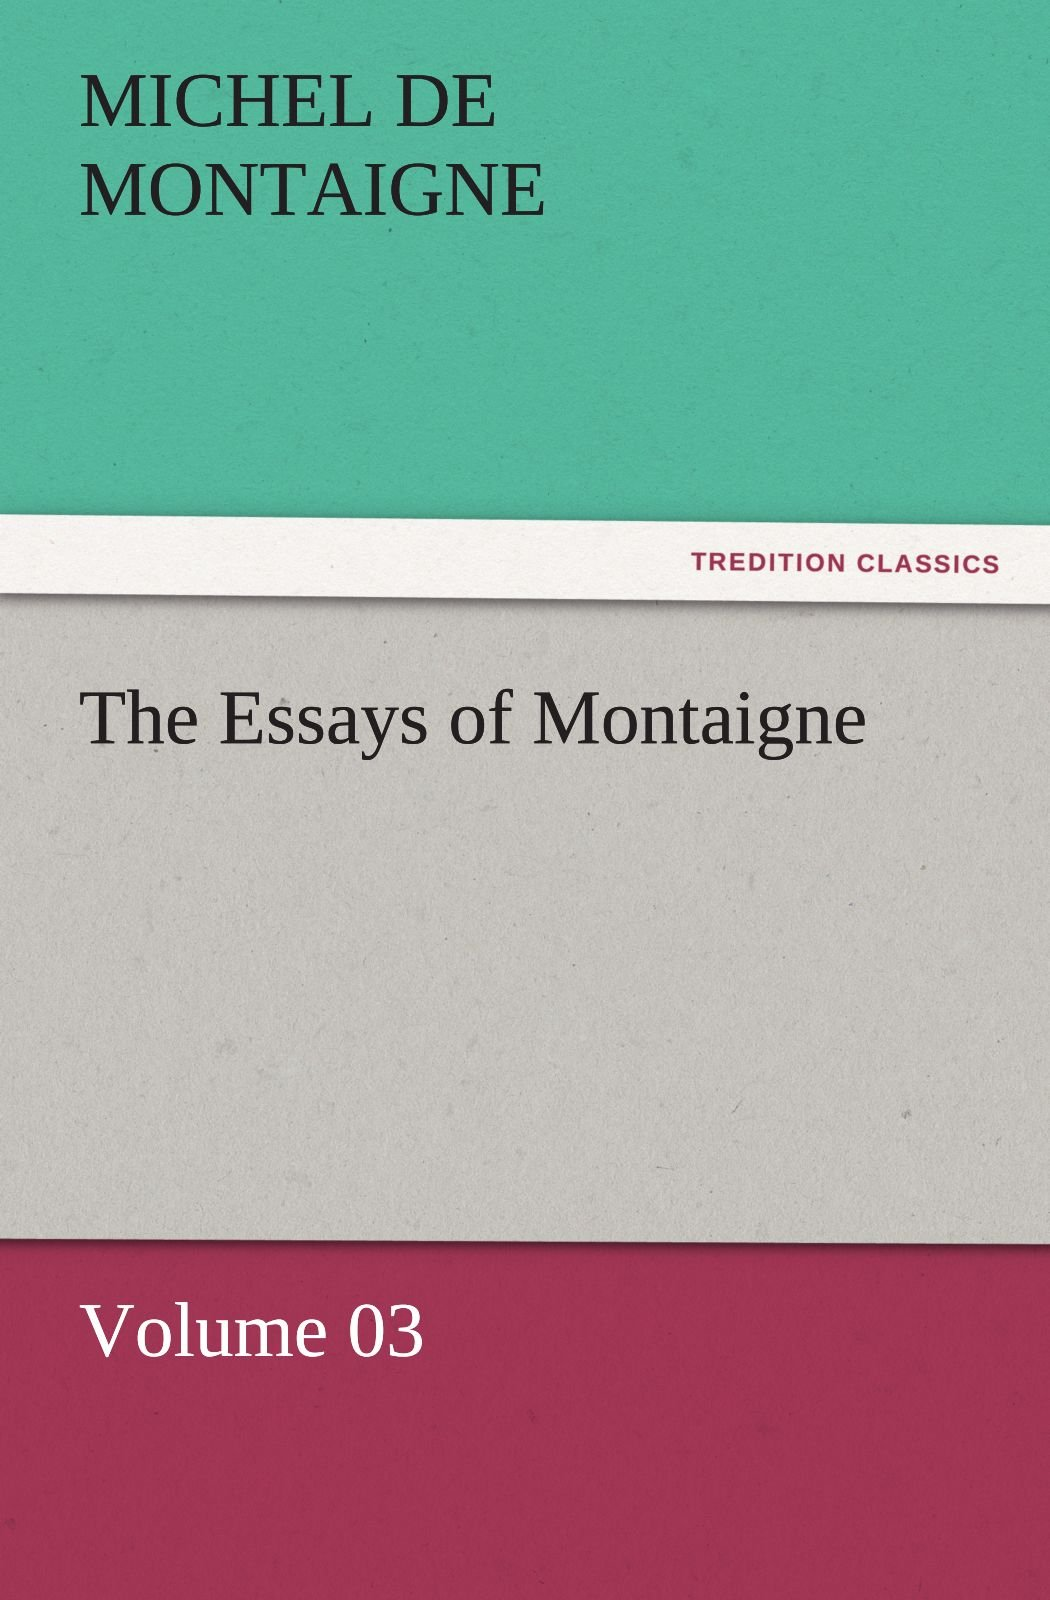 Read Online The Essays of Montaigne — Volume 03 (TREDITION CLASSICS) PDF